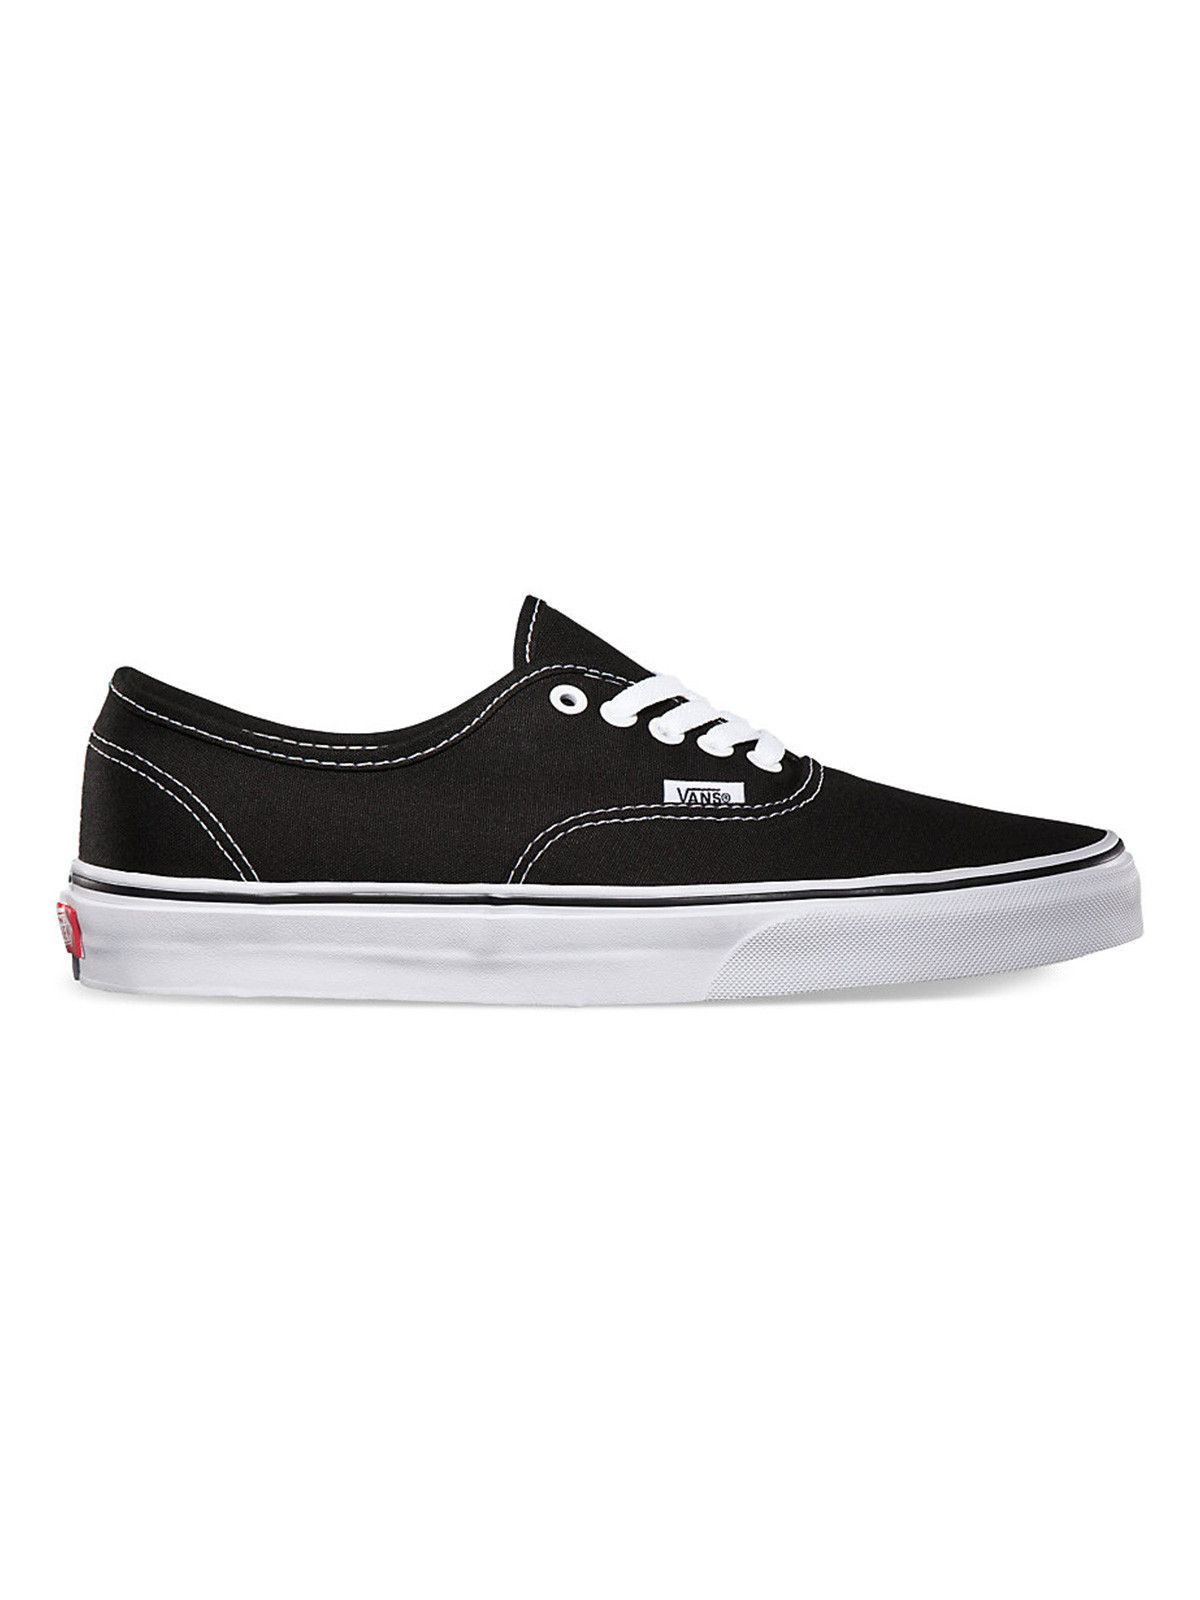 27631c41c82a9 Vans Authentic - Black